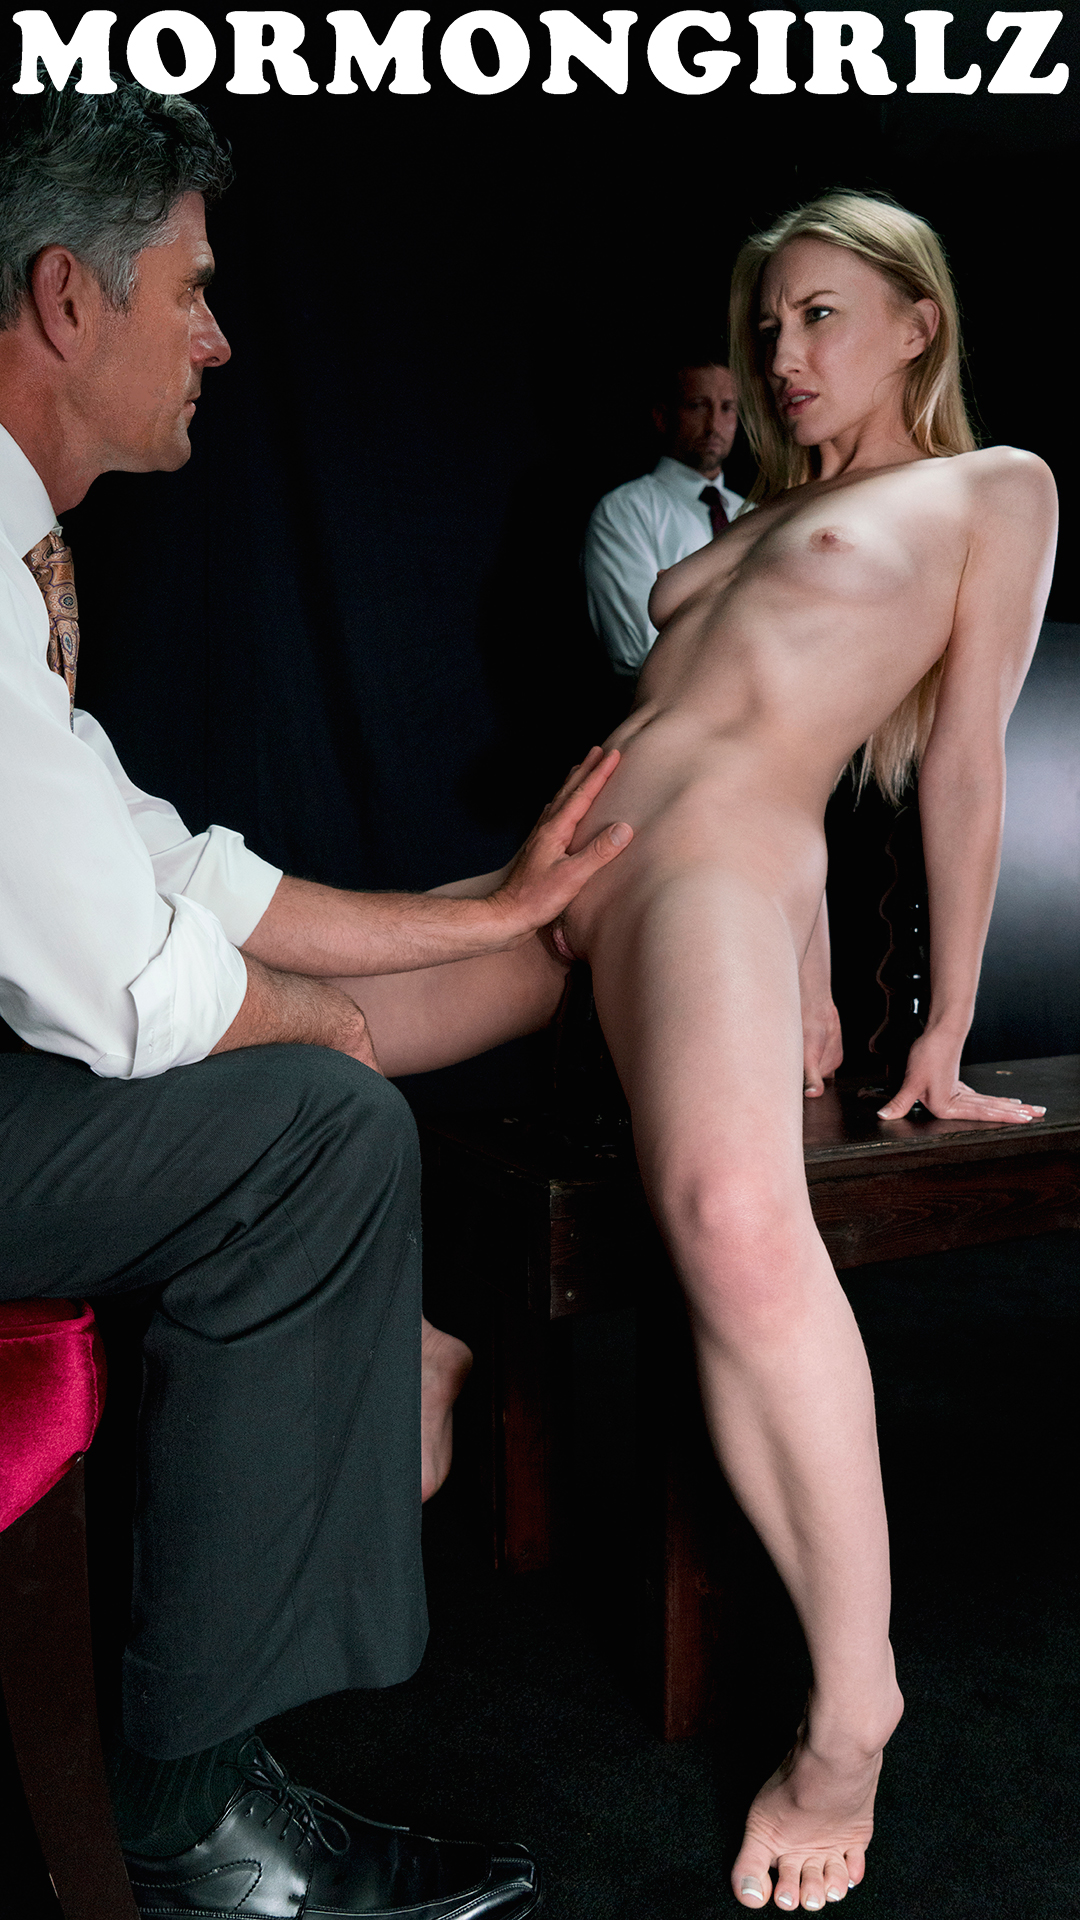 submissive Mormon Sister Jane experiencing a session with Father Joe #1